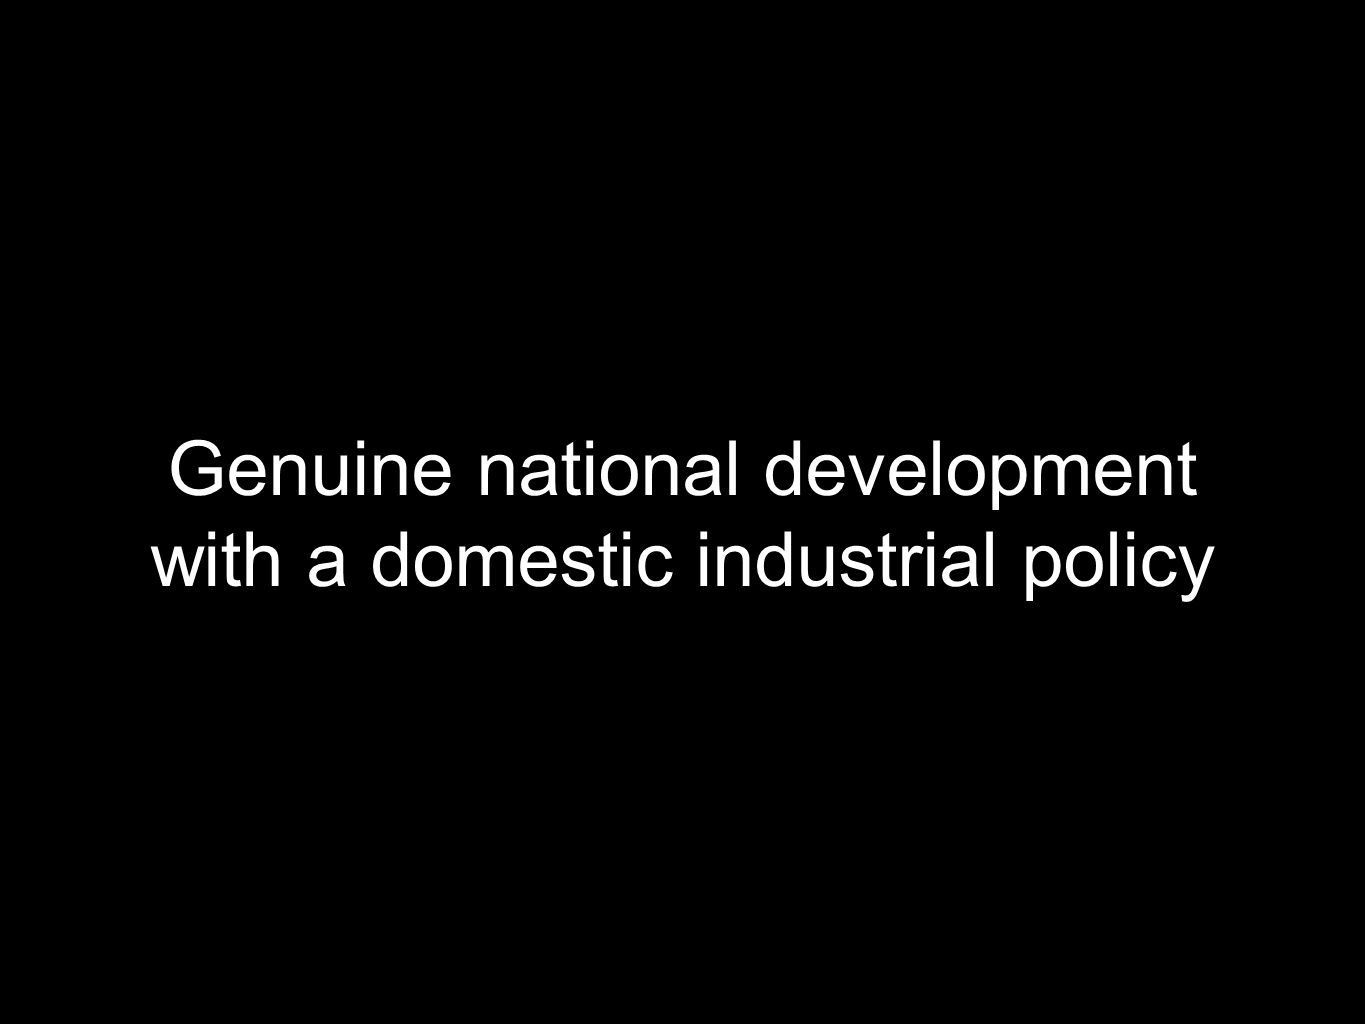 Genuine national development with a domestic industrial policy